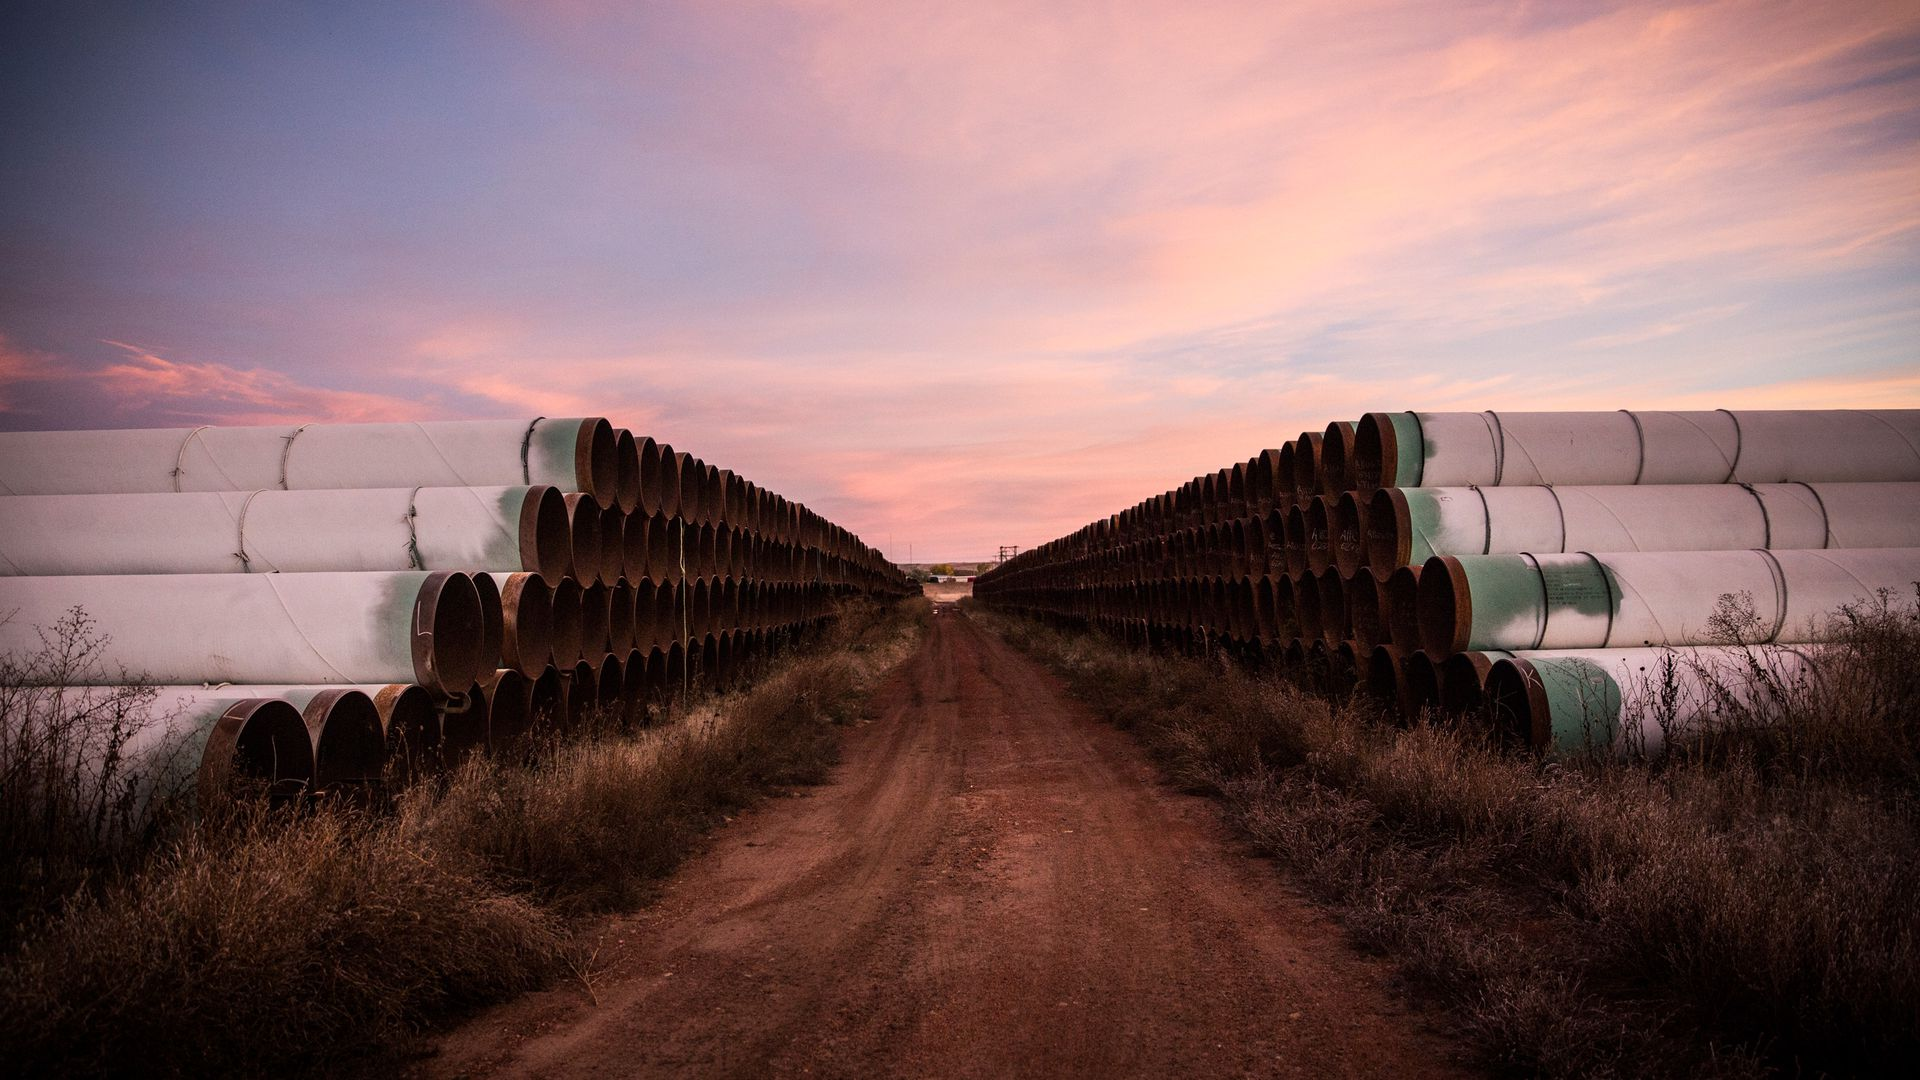 In this image, large pipes are stacked on either side of a dirt road.